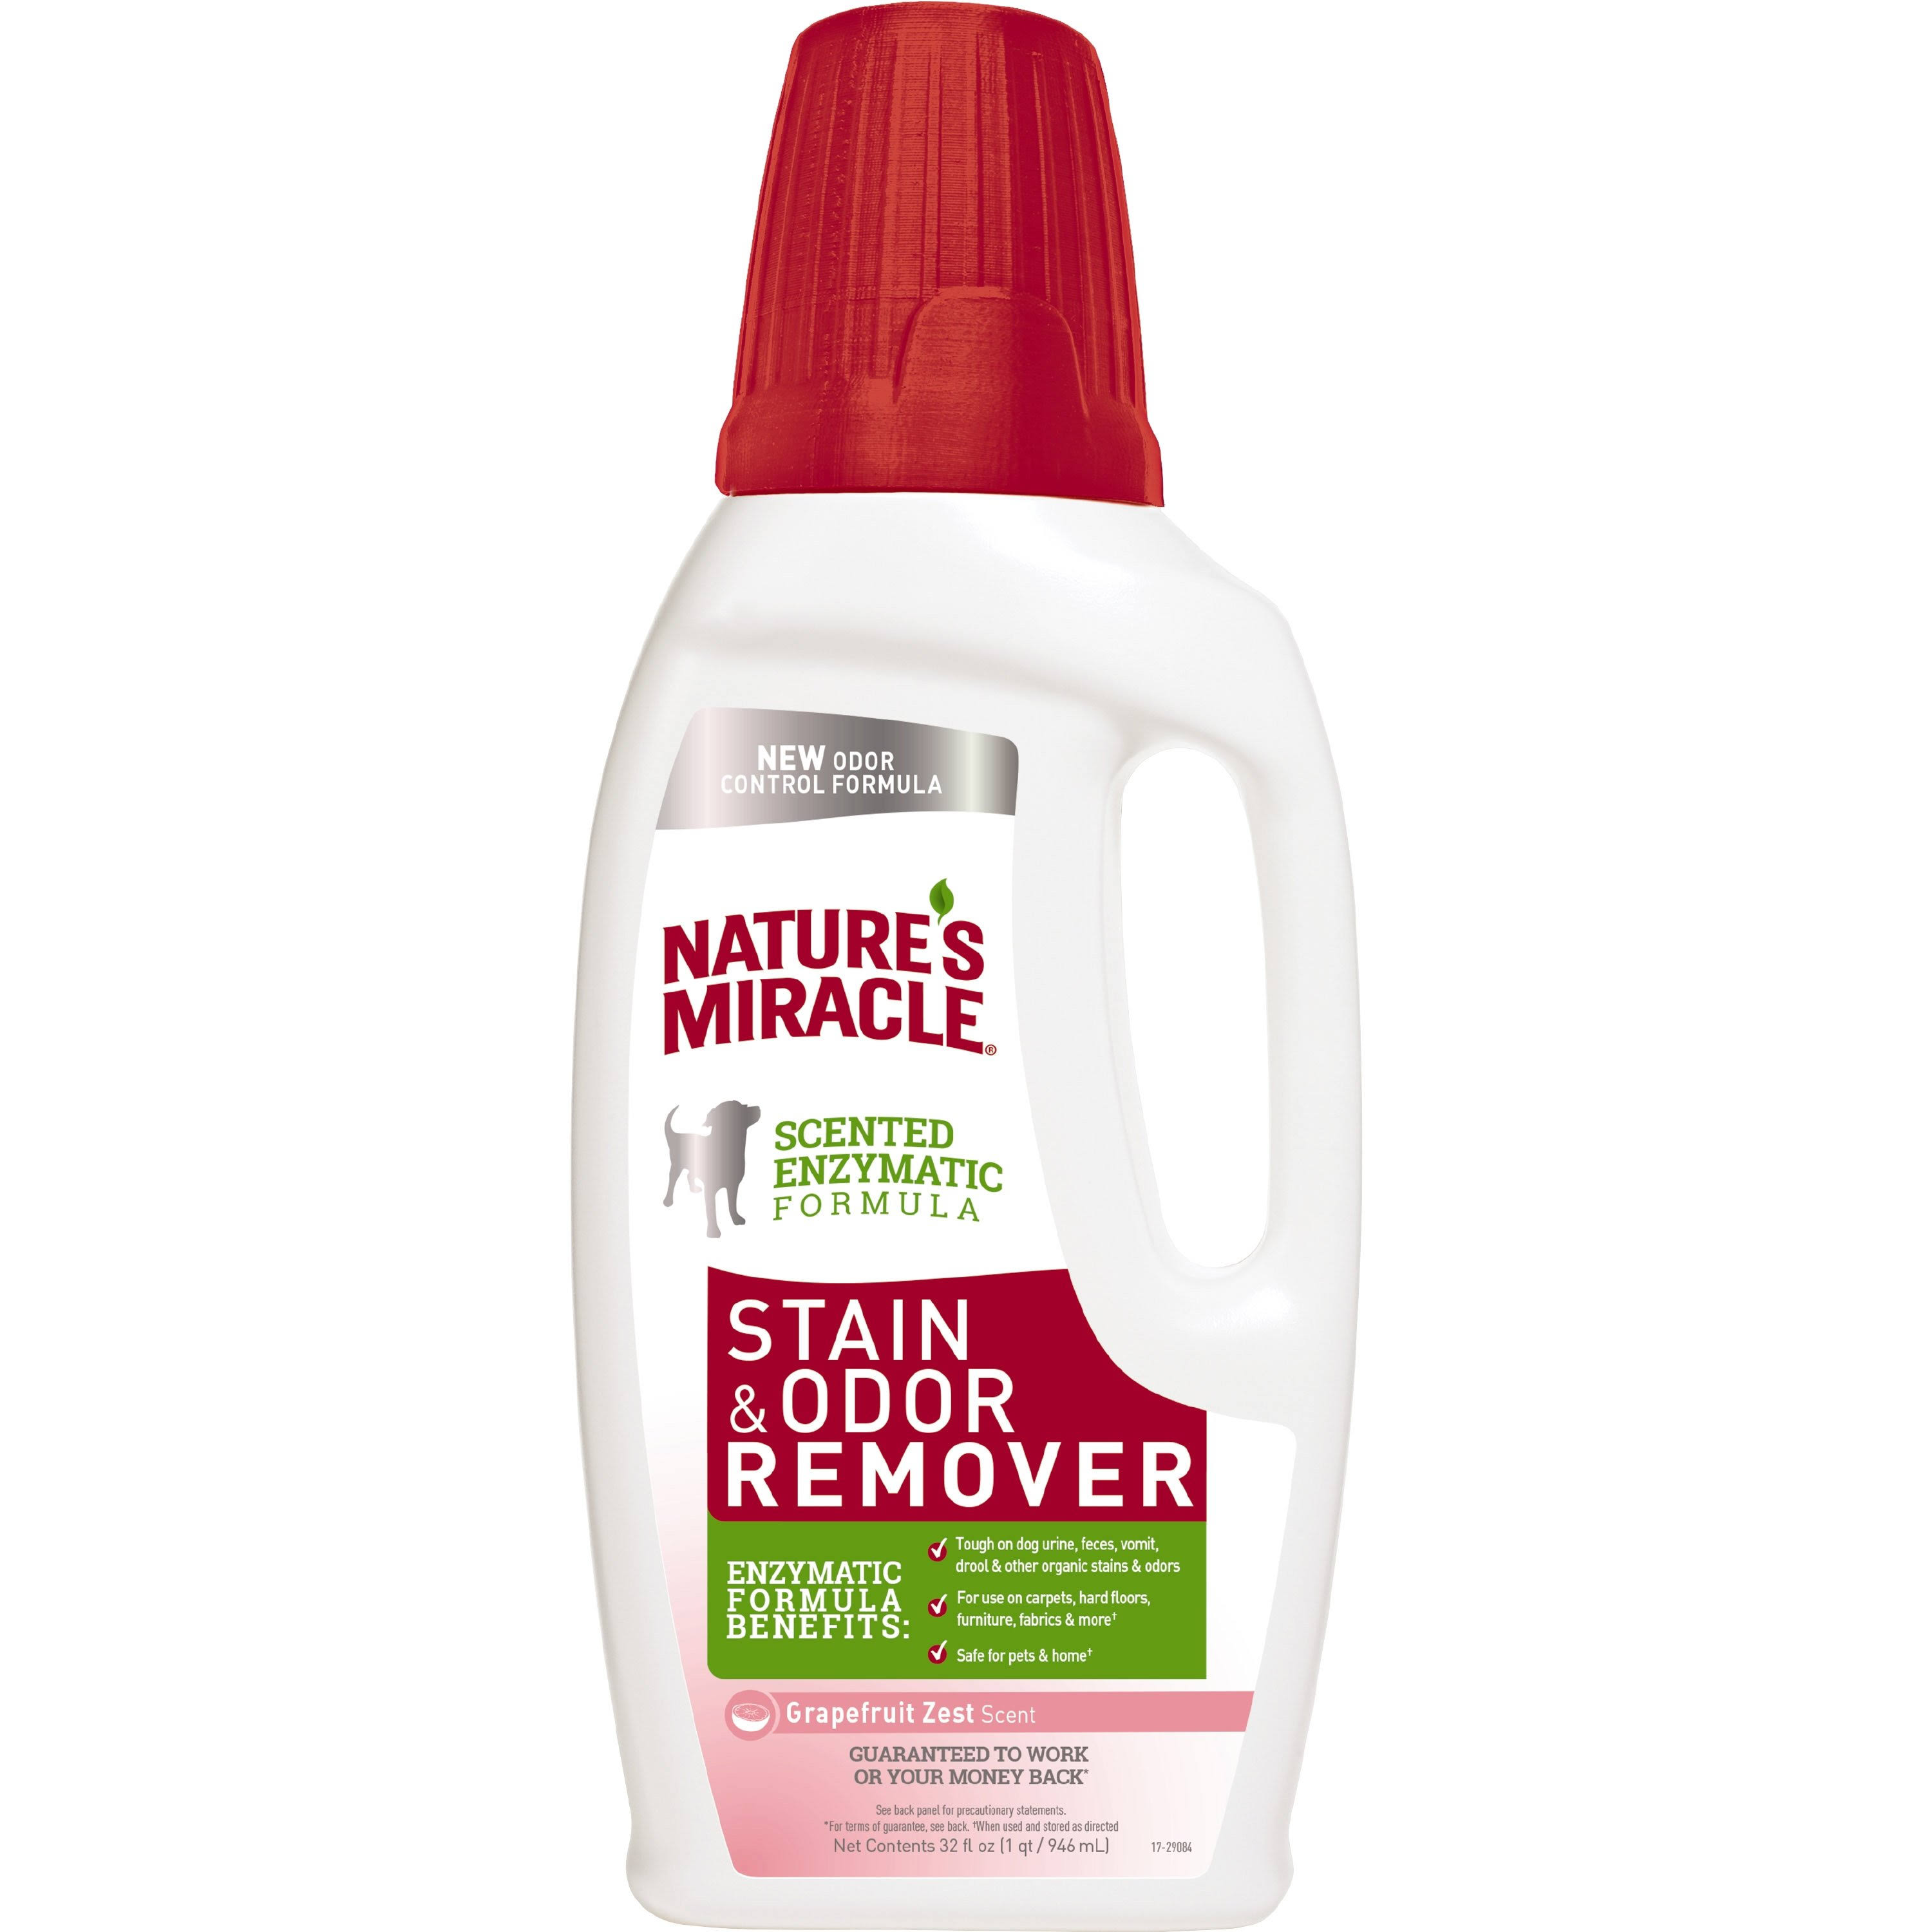 Nature's Miracle Stain and Odor Remover - Grapefruit Zest, 32oz